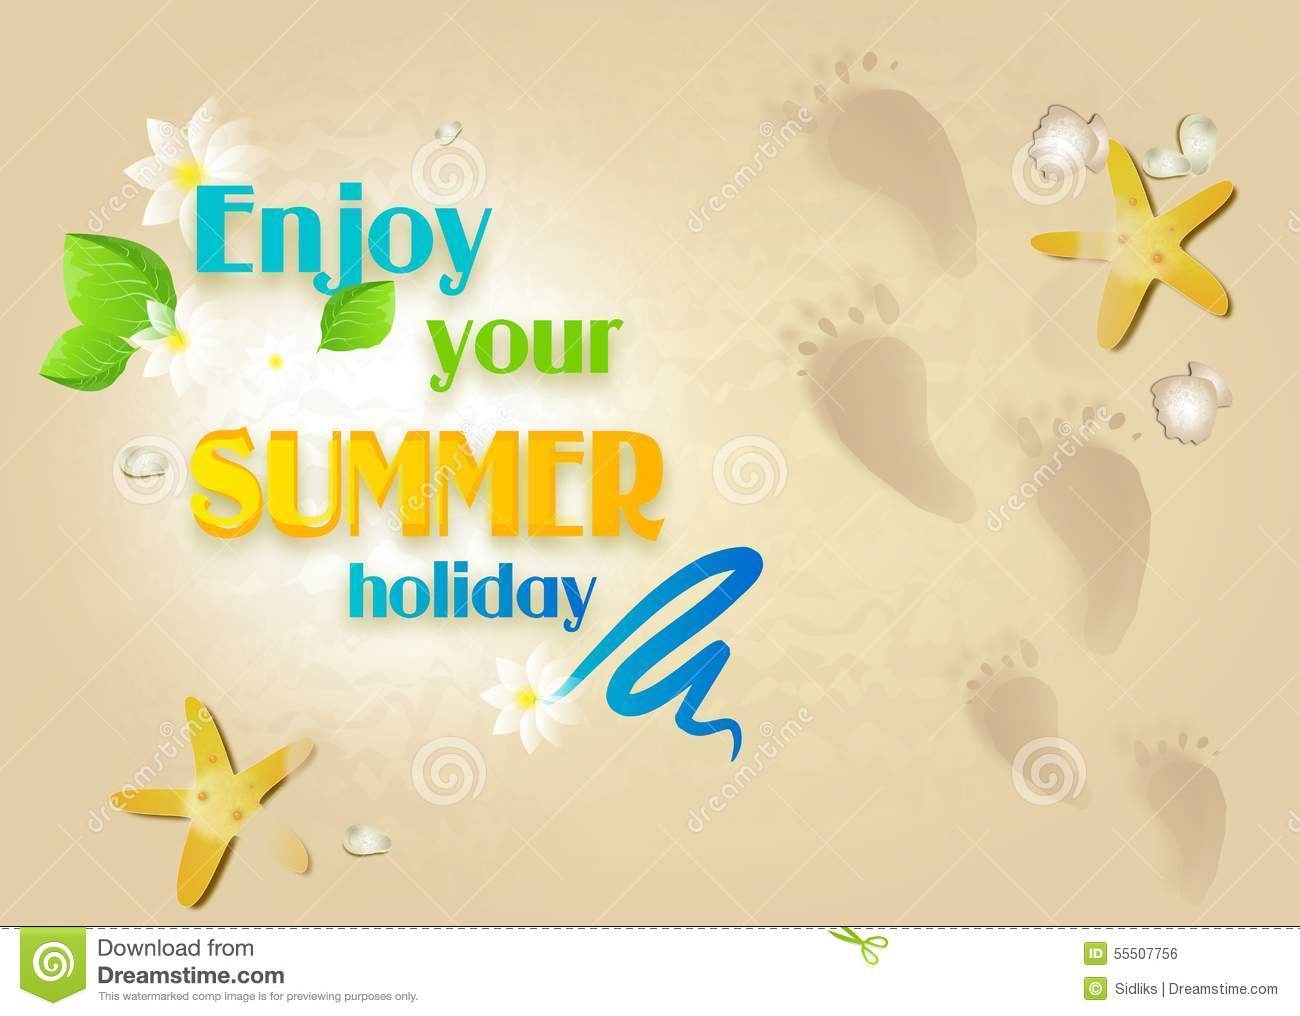 Summer Card With Greeting Enjoy Your Summer Holiday